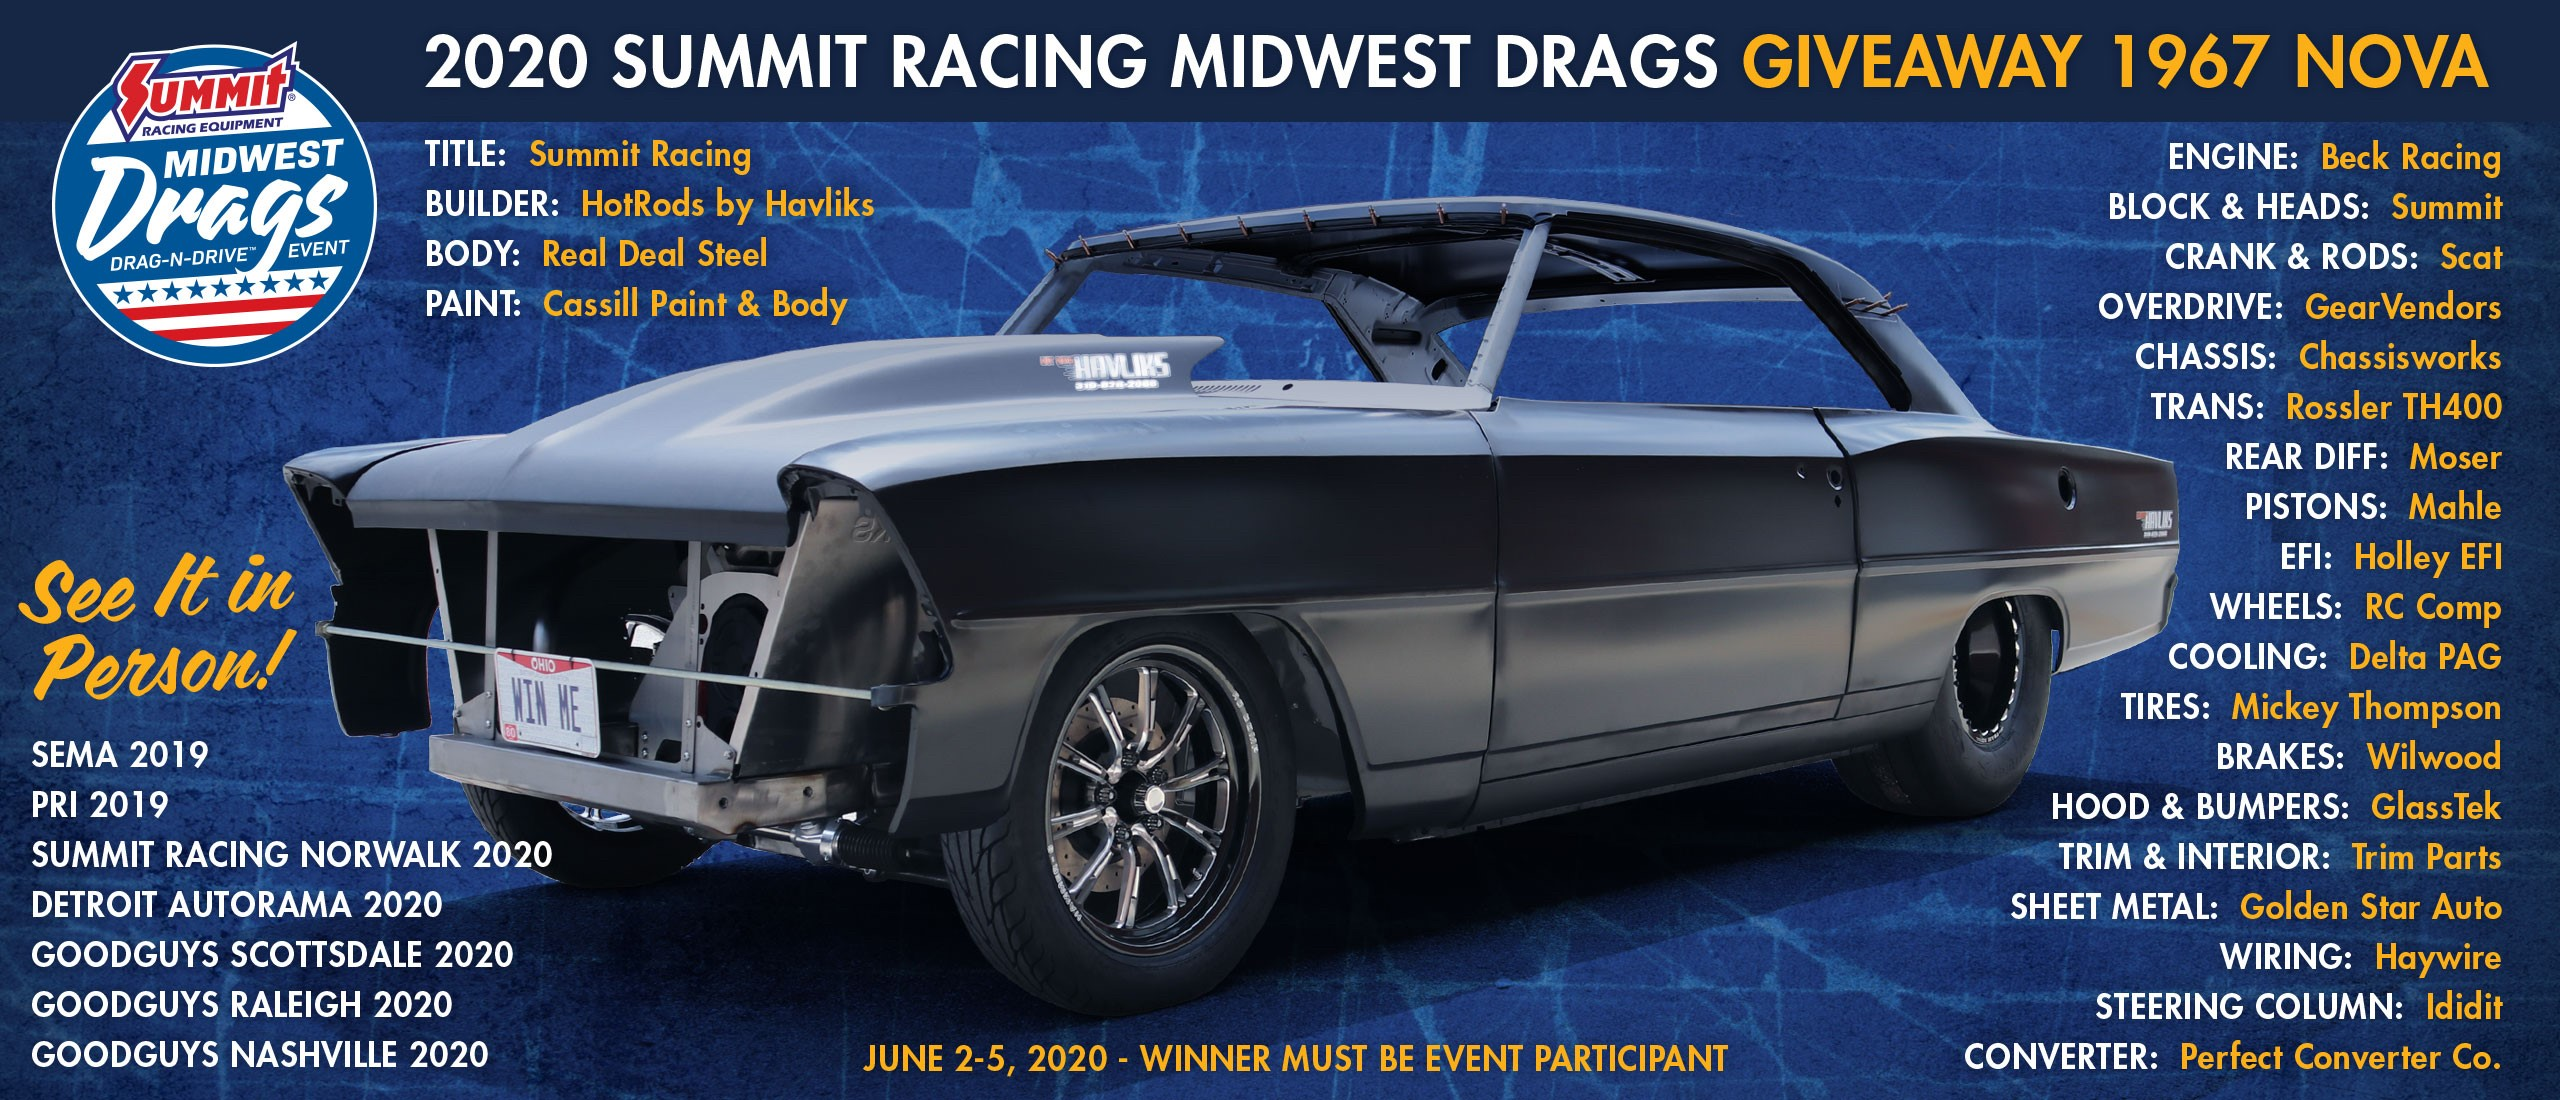 Midwest Drags Give-a-way Car